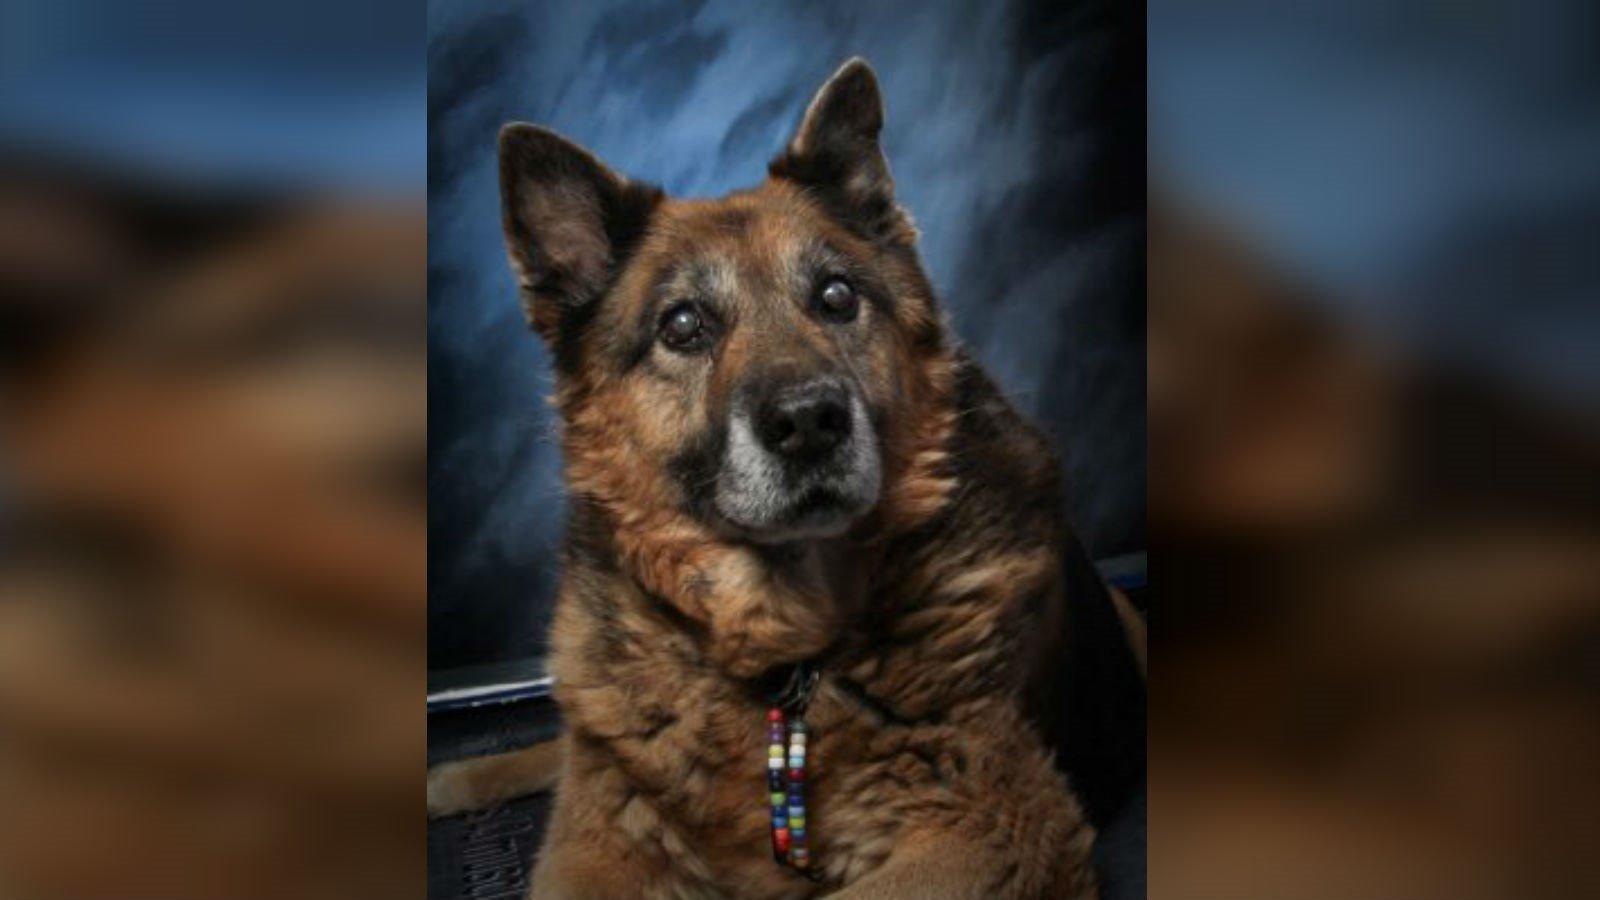 CD the dog's school picture. RIP, buddy.